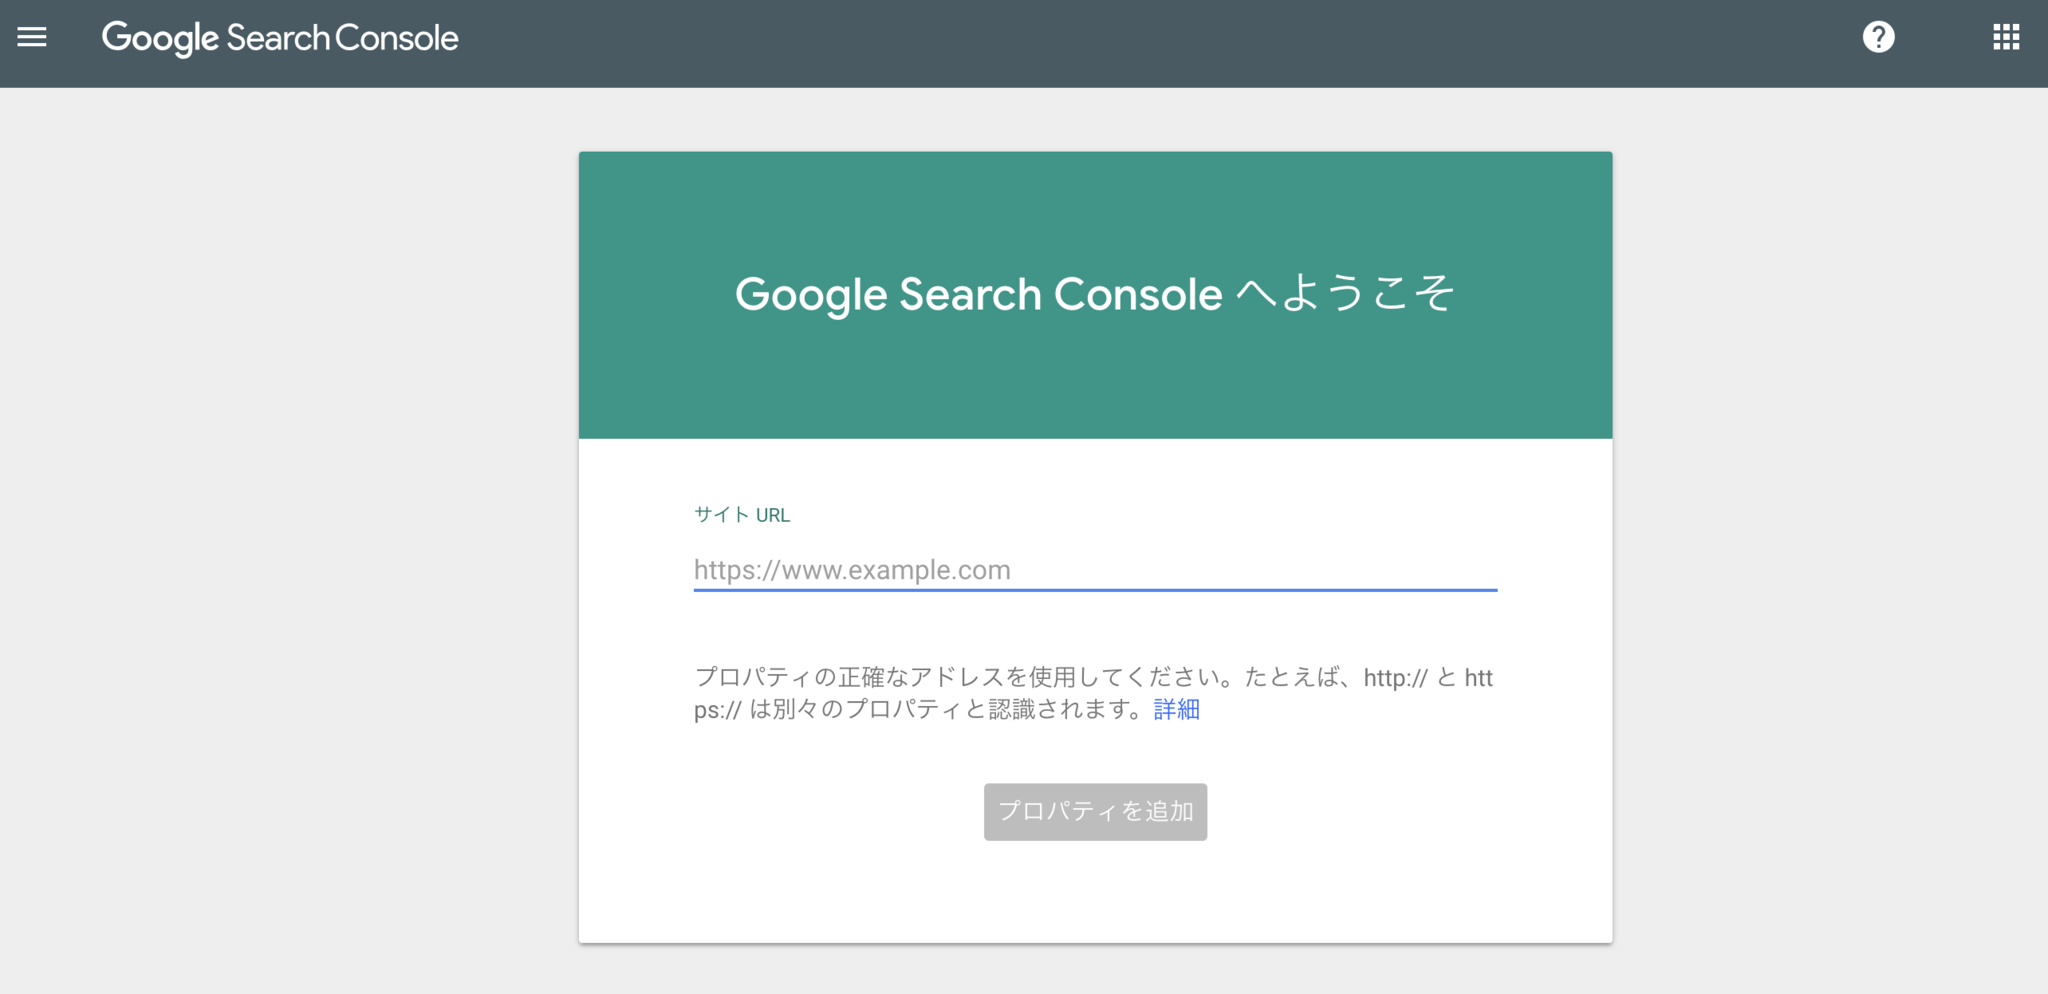 search-console-02.png